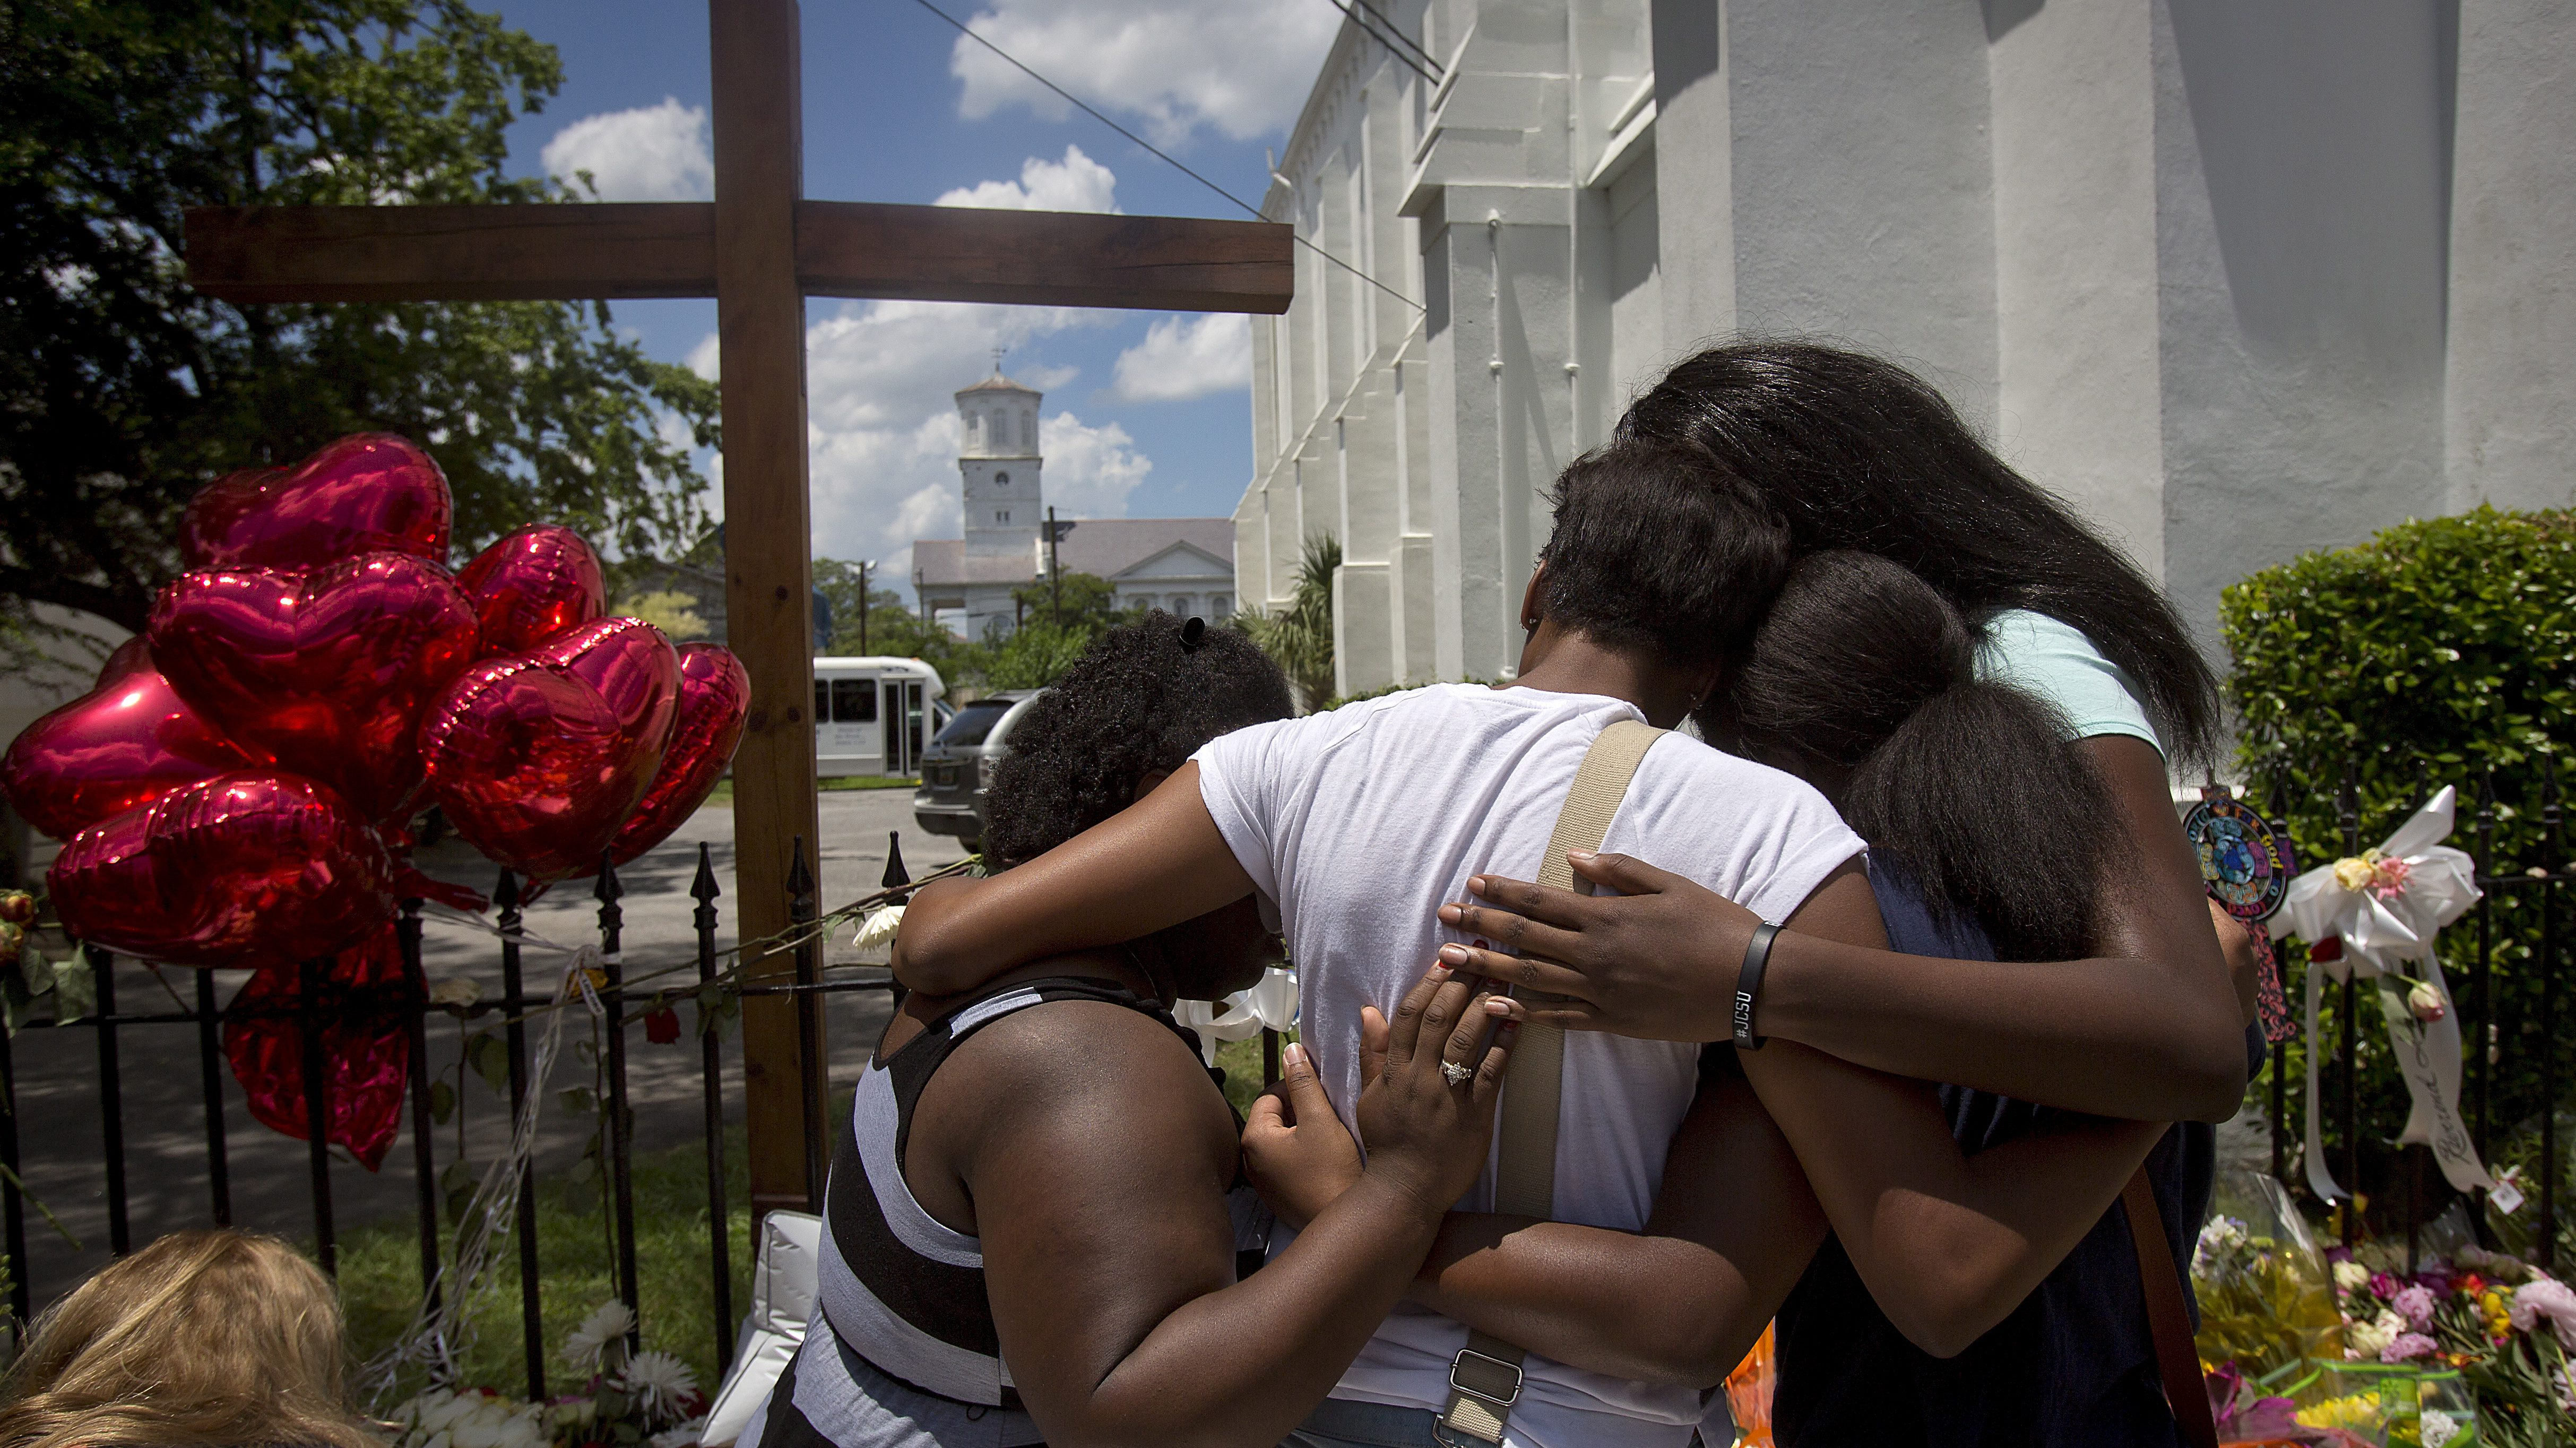 where a mass shooting took place, in Charleston, South Carolina June 20, 2015. Mourners arrived in Charleston from around the United States on Saturday to pay their respects to nine black churchgoers killed in the attack this week, with services planned throughout the day ahead of a rally in the state capital later in the evening. REUTERS/Carlo Allegri      TPX IMAGES OF THE DAY      - RTX1HEJM